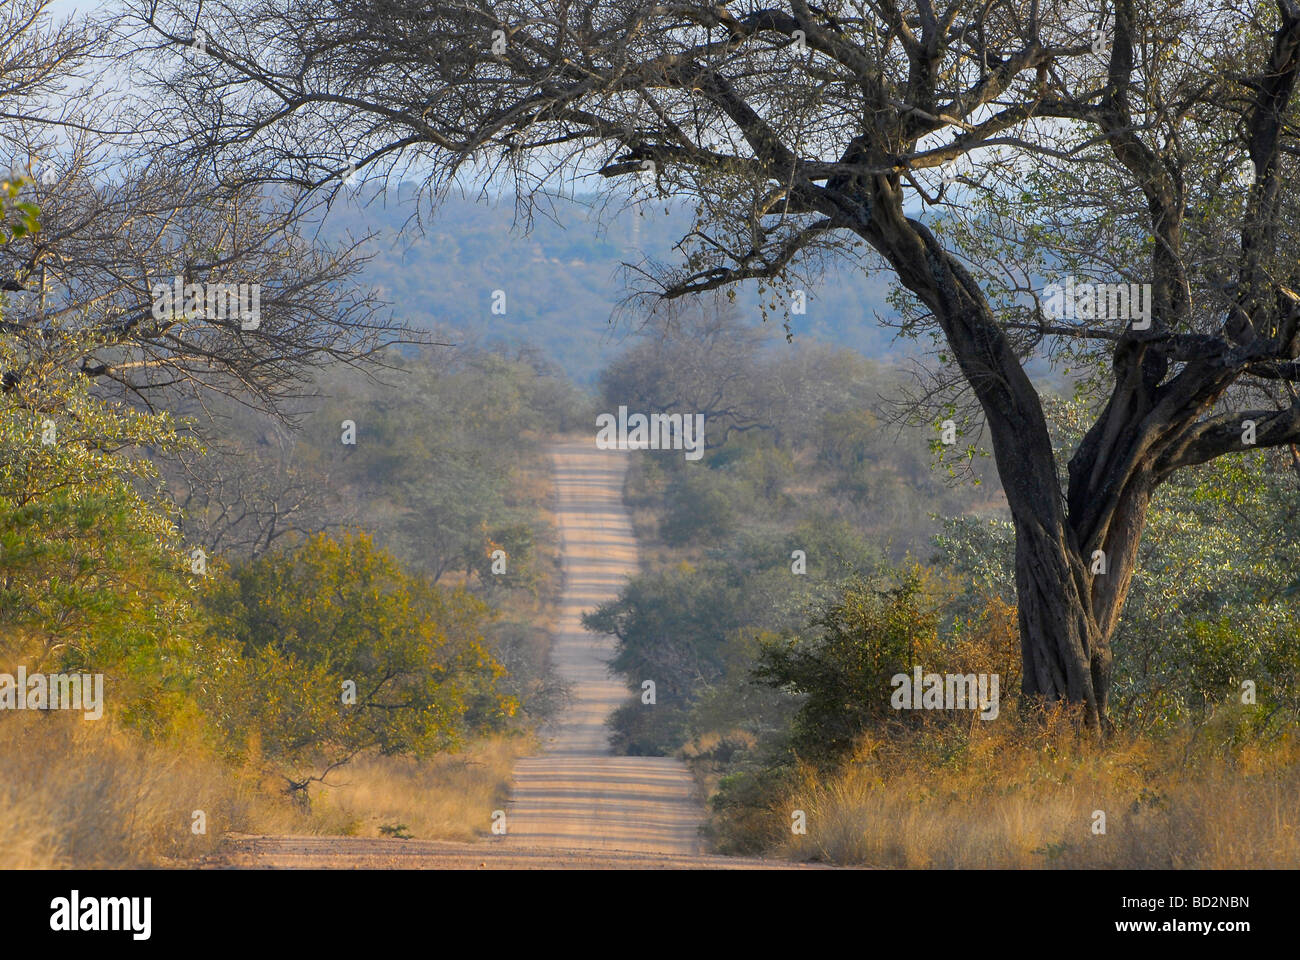 Dirt road winding through dry winter bush in Kruger National Park, South Africa - Stock Image